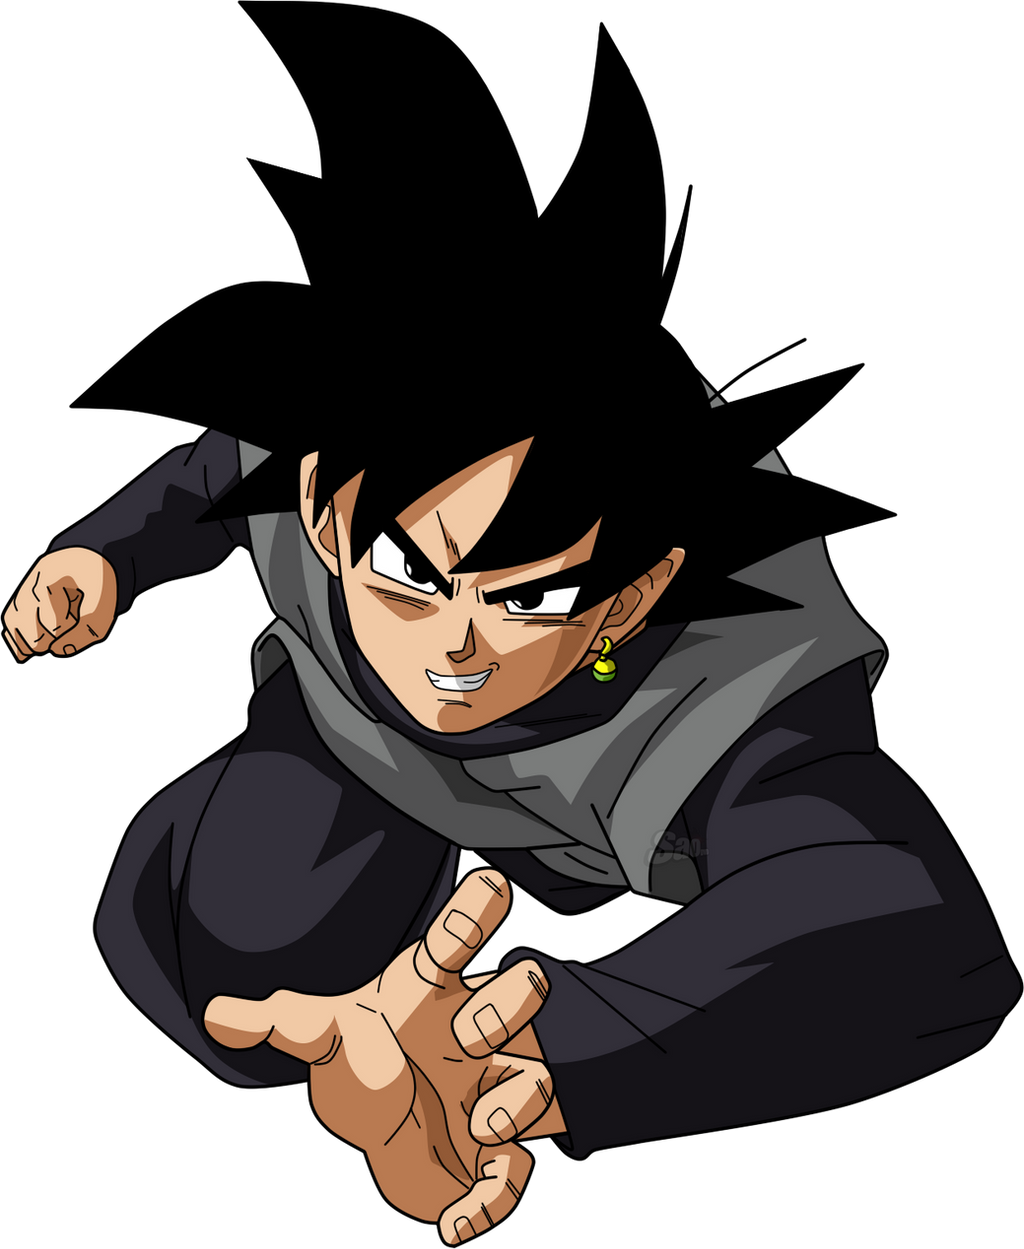 black goku el invencible enemigo de db super taringa. Black Bedroom Furniture Sets. Home Design Ideas